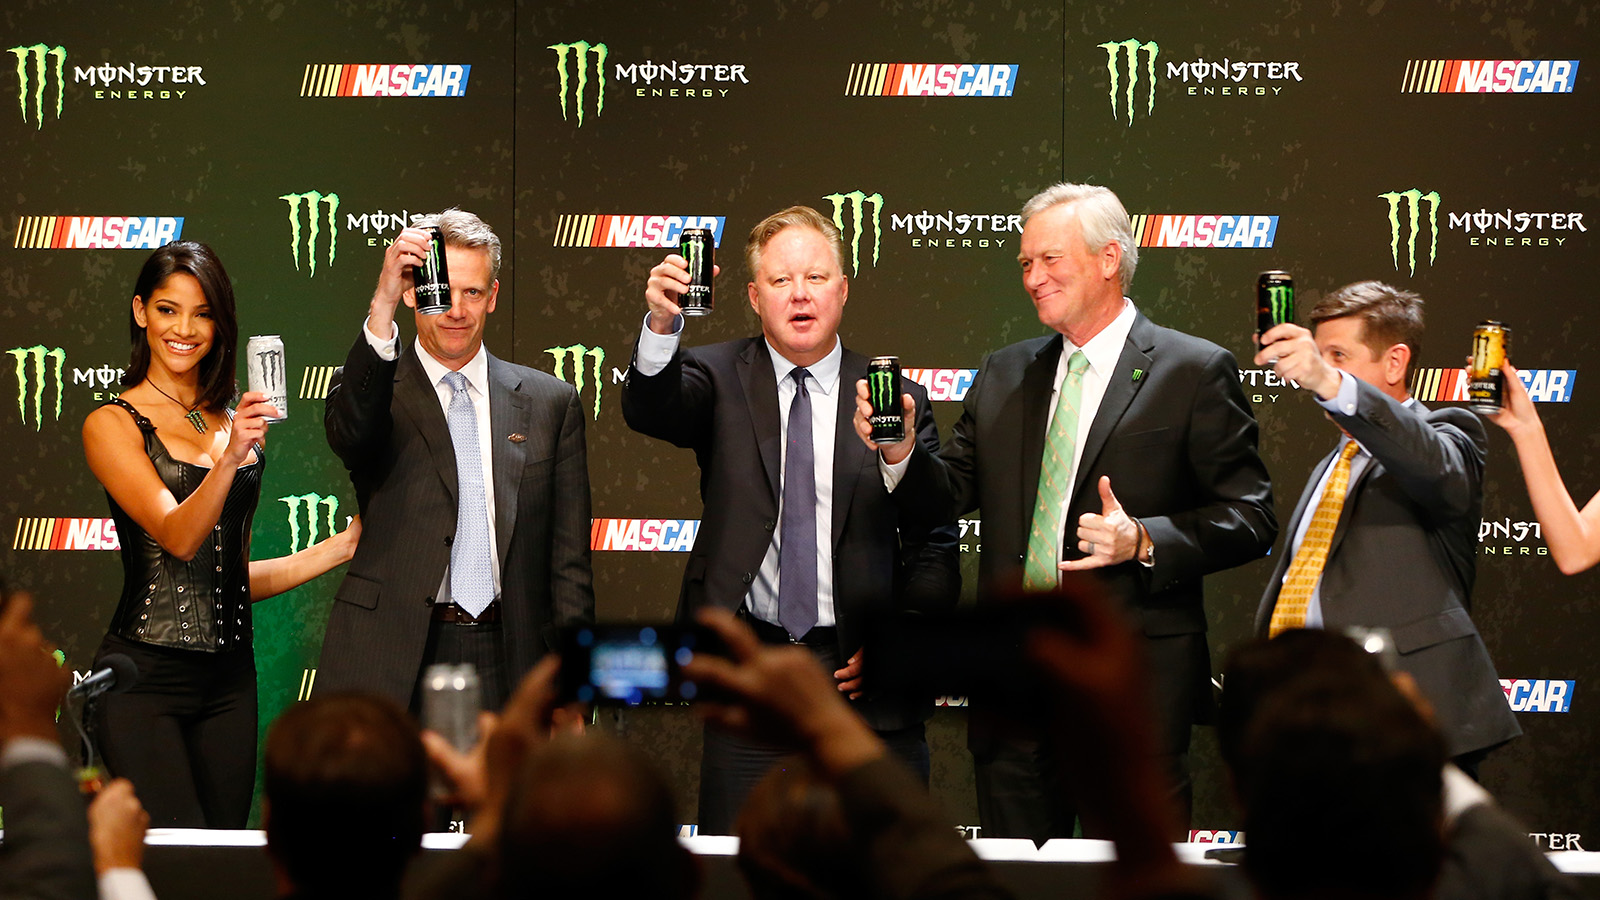 LAS VEGAS, NV - DECEMBER 01:  Steve Phelps, Brian France, Mark Hall and Mitch Covington toast during a press conference as NASCAR and Monster Energy announce premier series entitlement partnership at Wynn Las Vegas on December 1, 2016 in Las Vegas, Nevada. Monster Energy, which will begin its tenure as naming rights partner on Jan. 1, 2017, will become only the third company to serve as the entitlement sponsor in NASCAR premier series history, following RJ Reynolds and Sprint/Nextel.  (Photo by Jonathan Ferrey/Getty Images)